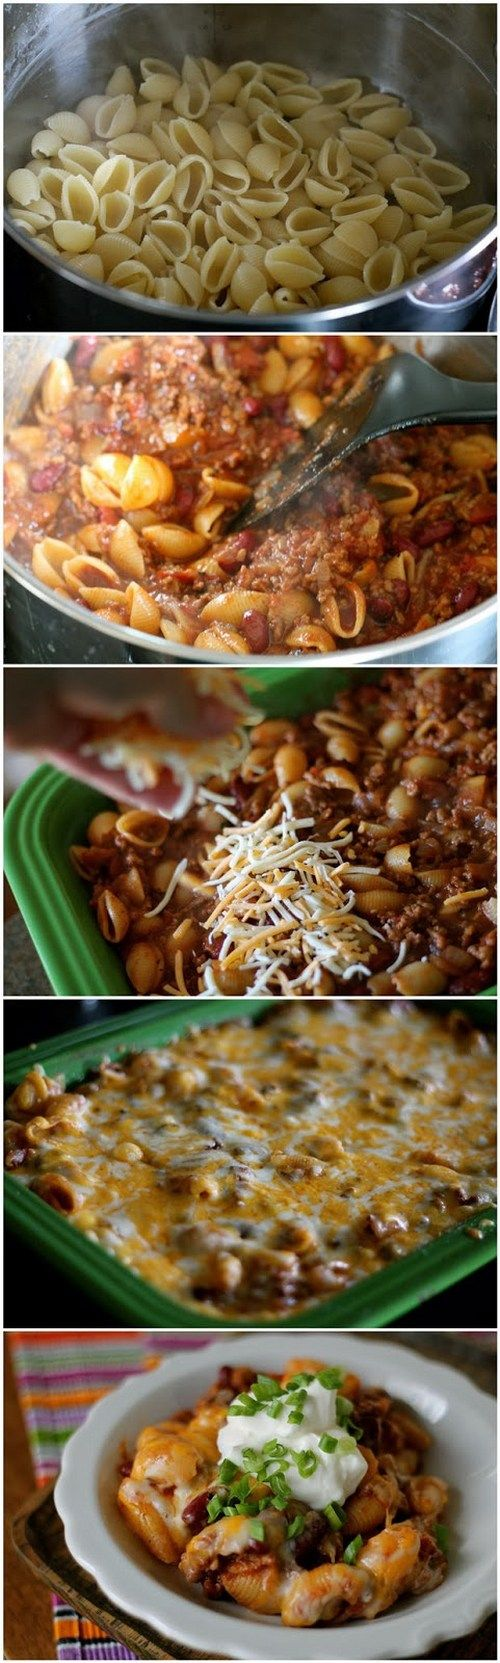 Chili Pasta Bake. Perfect for chilly weather. Use chili already made, add cheese, noodles and sour cream (if needed)